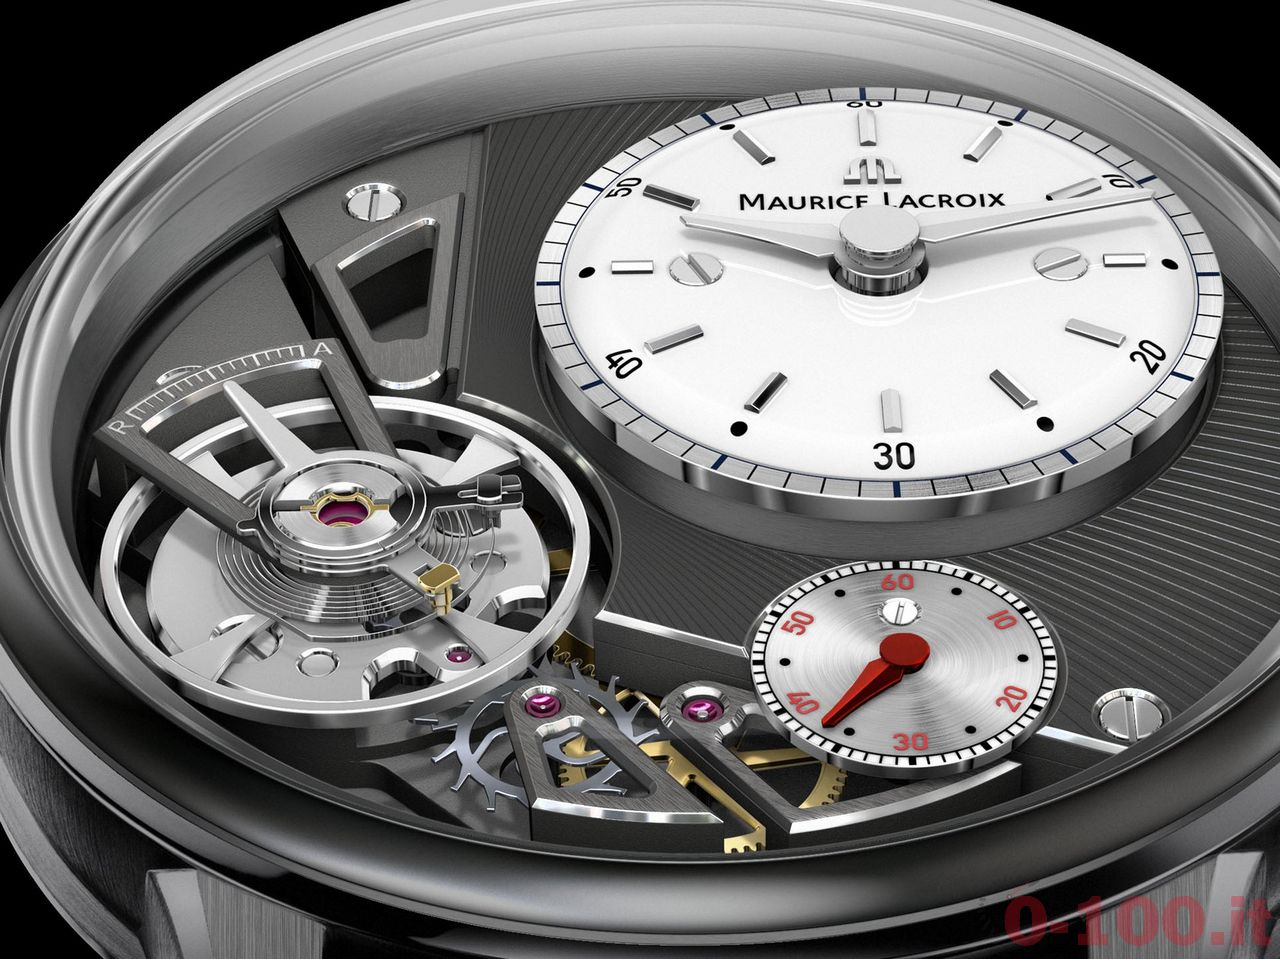 Baselworld-2014-Maurice-Lacroix-Masterpiece-Gravity _0-1007